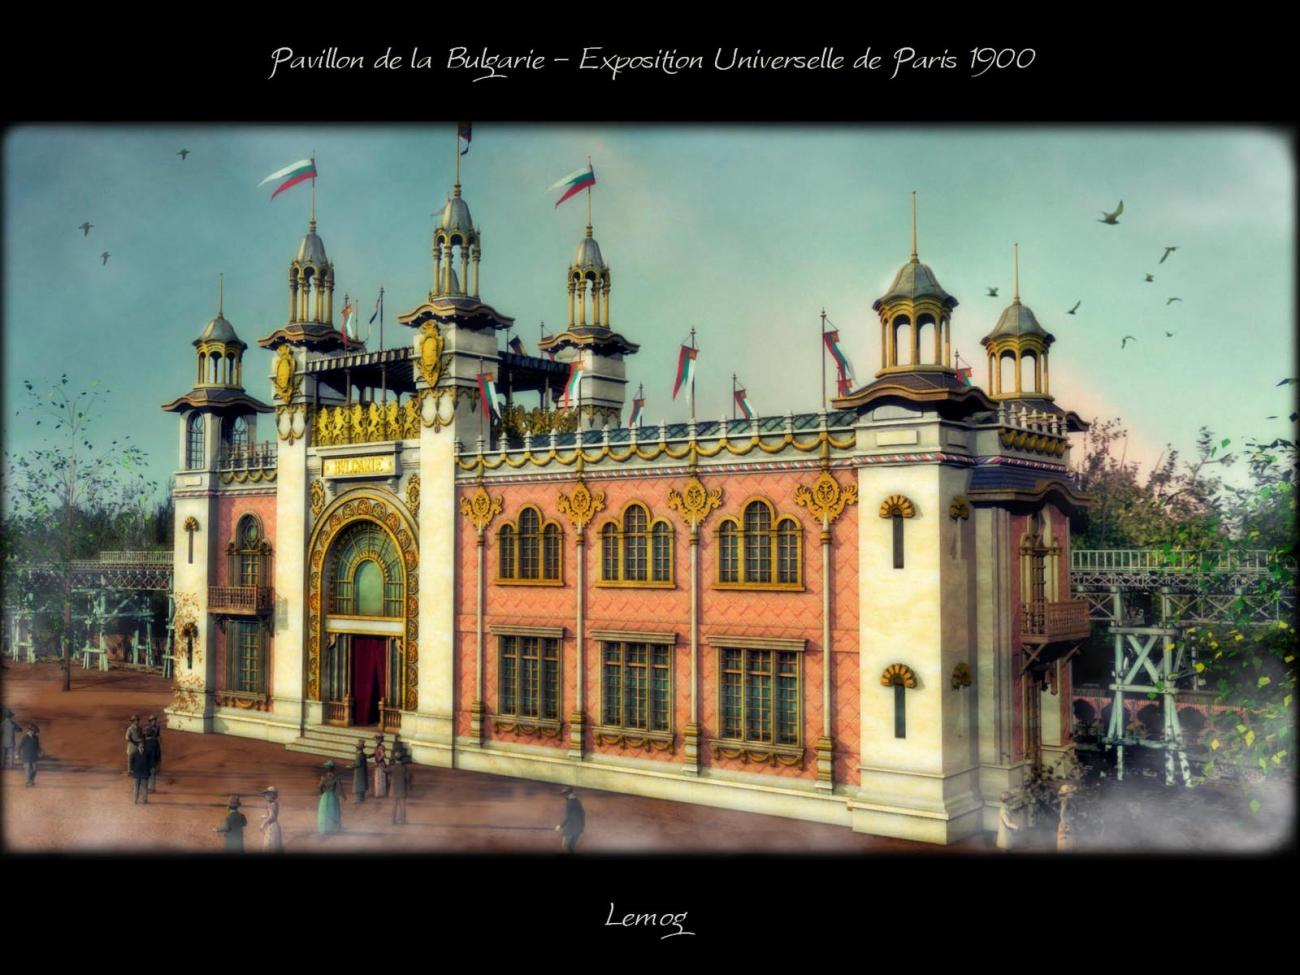 Paris World's Fair 1900 - Bulgarian Pavilion